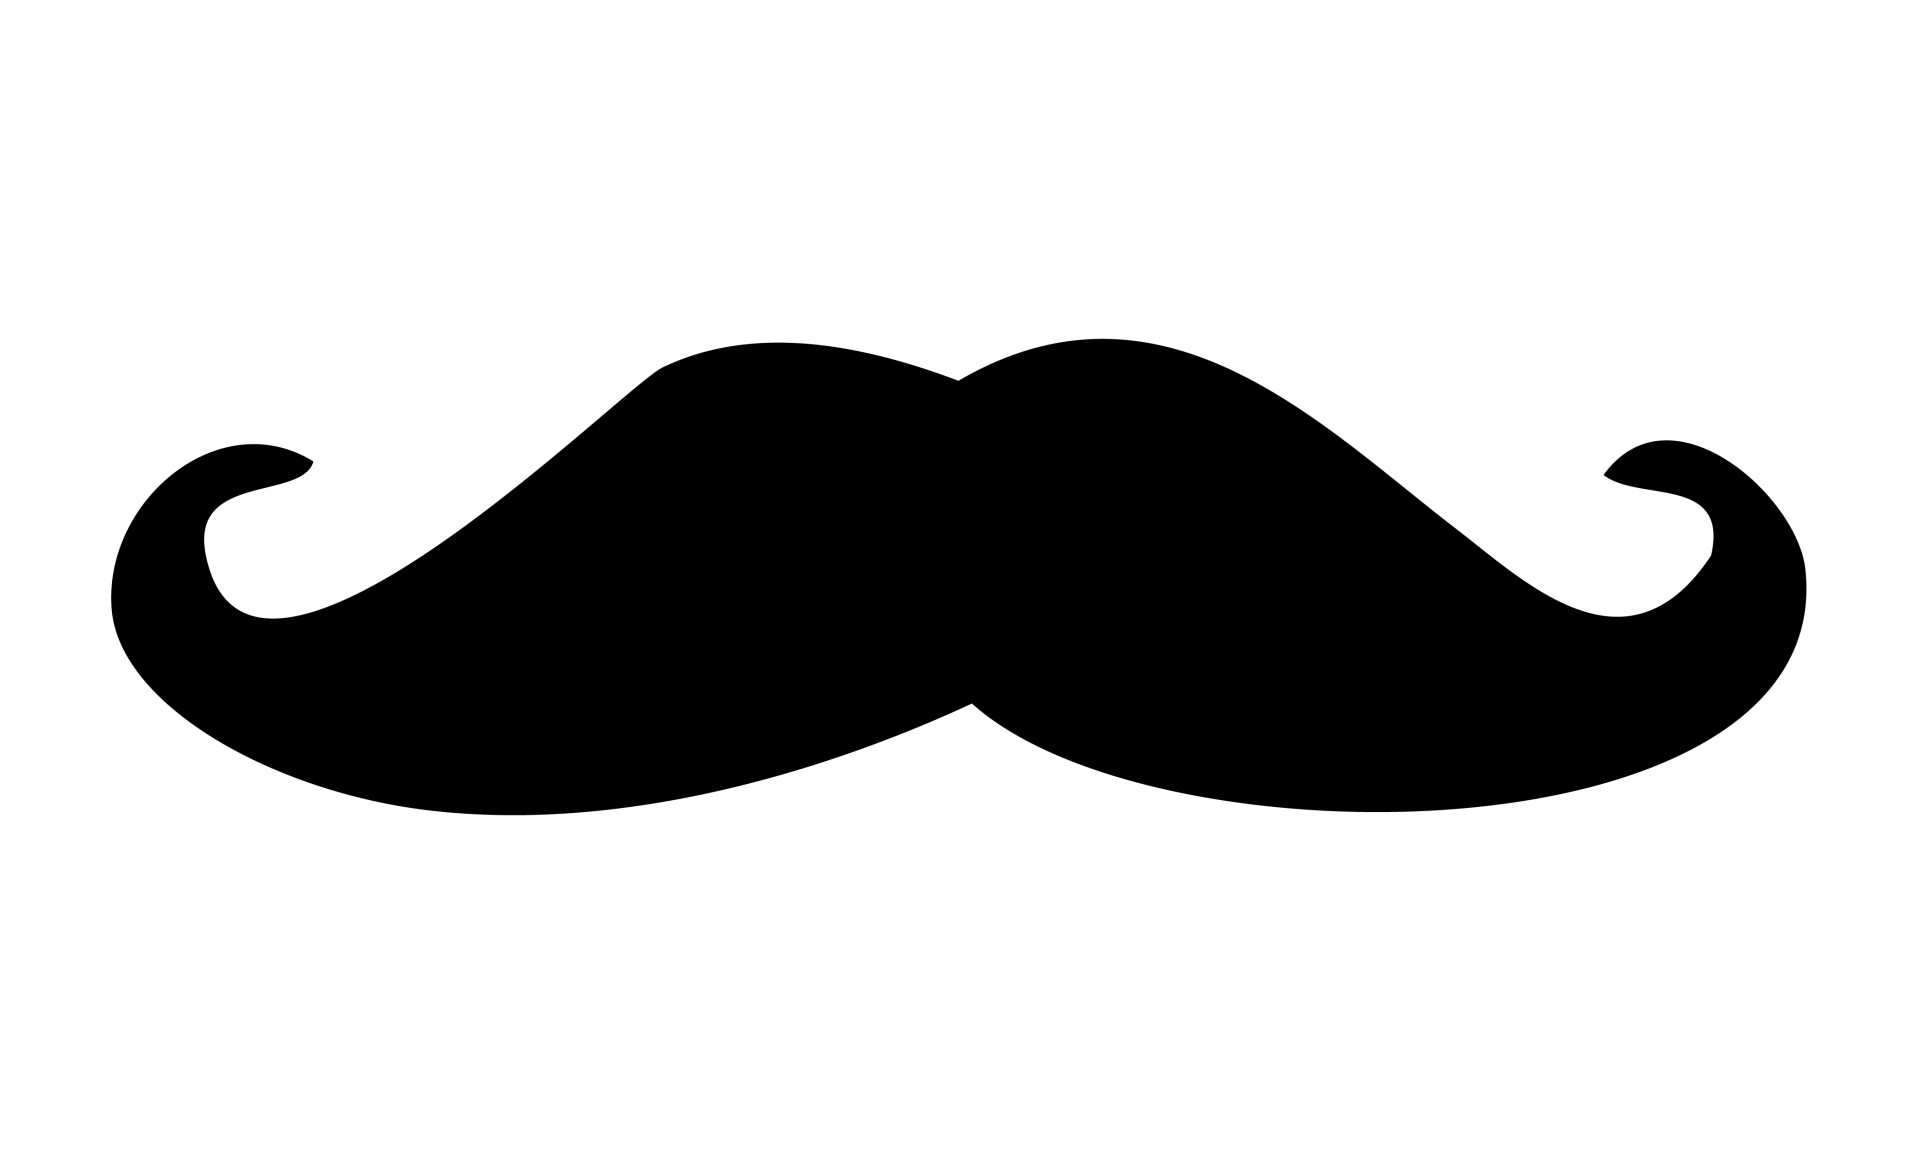 Black free stock photo. Moustache clipart